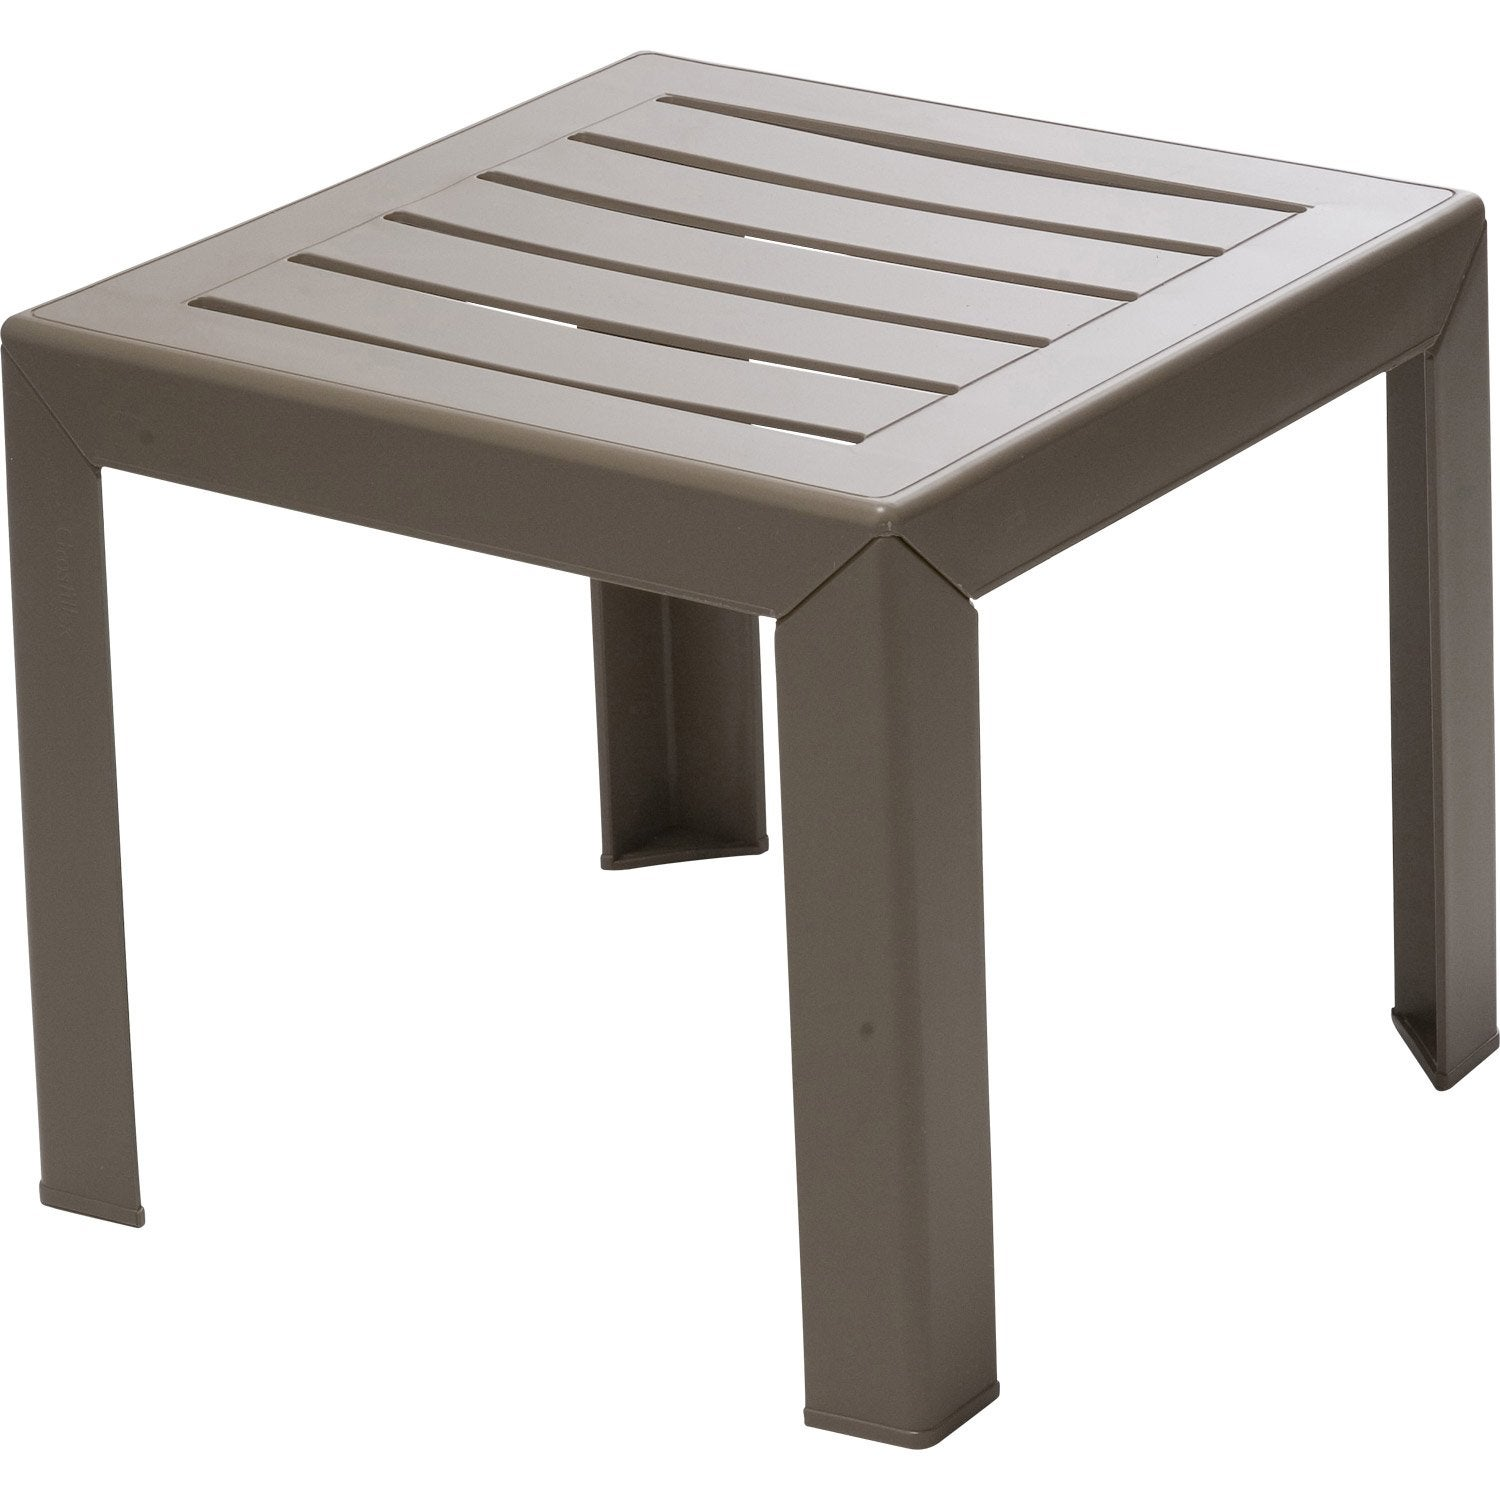 Table basse de jardin en plastique blanc - Leroy merlin table jardin ...